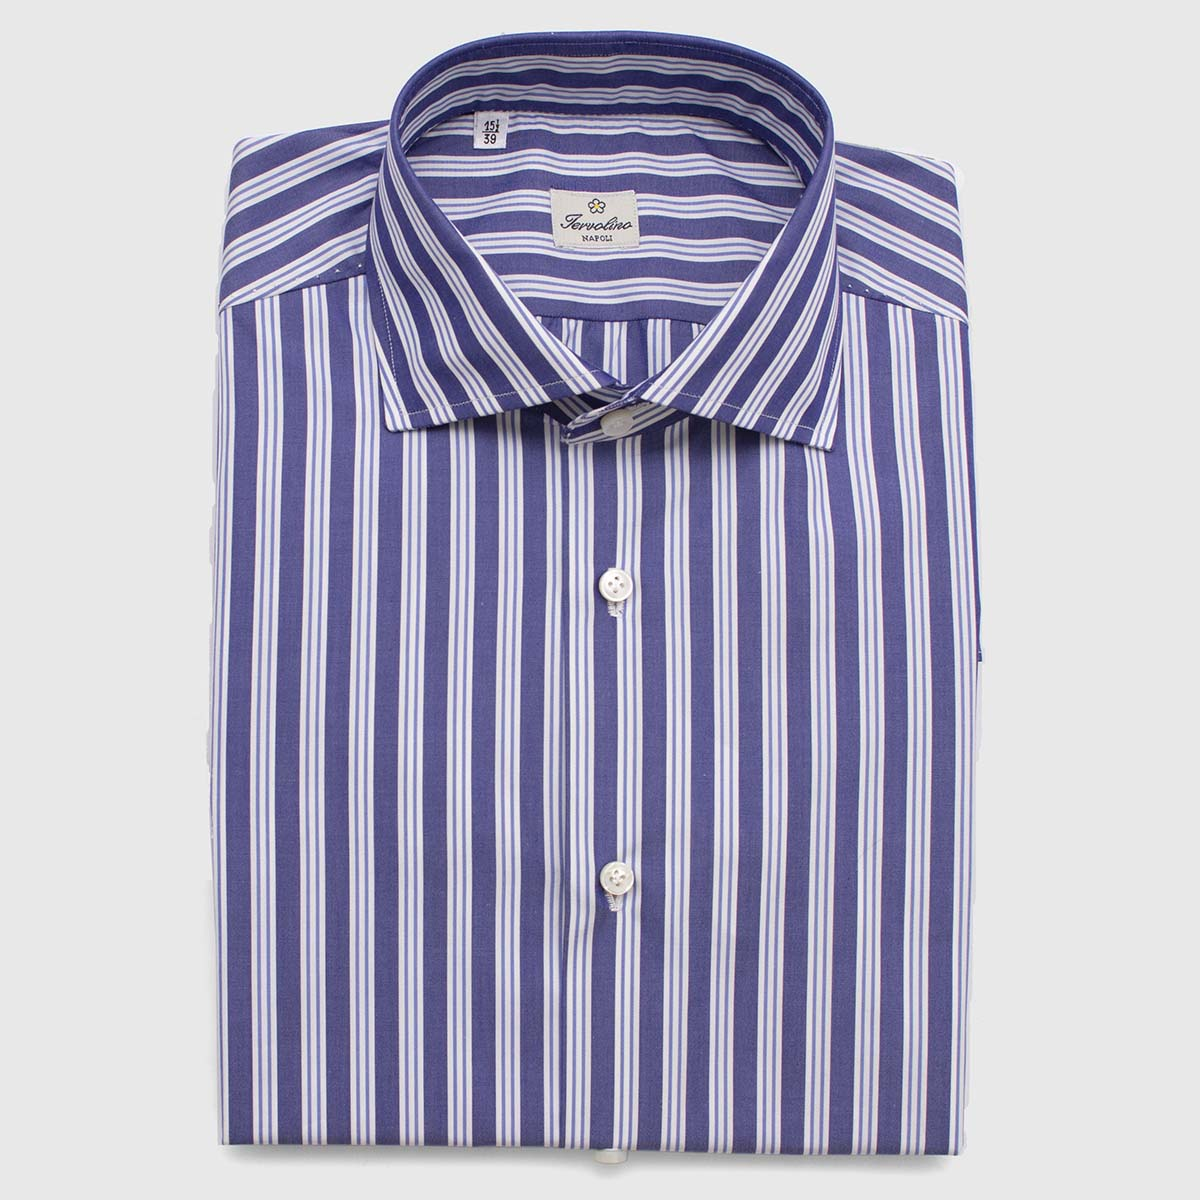 100% Blue and white striped Cotton shirt made in 12 hand-made steps